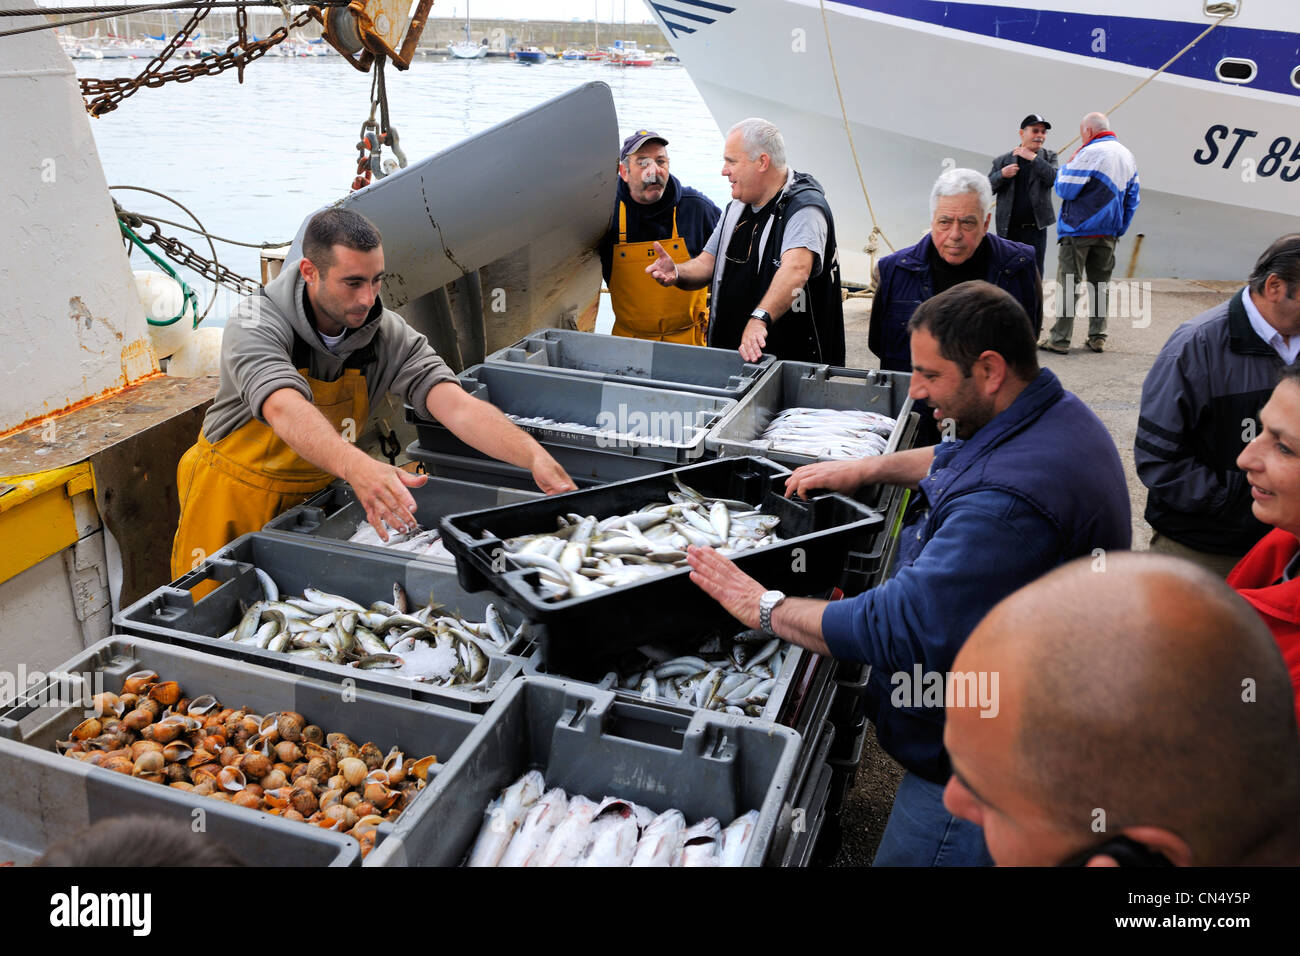 France, Herault, Sete, the fish auction market, fishery disembarkation - Stock Image